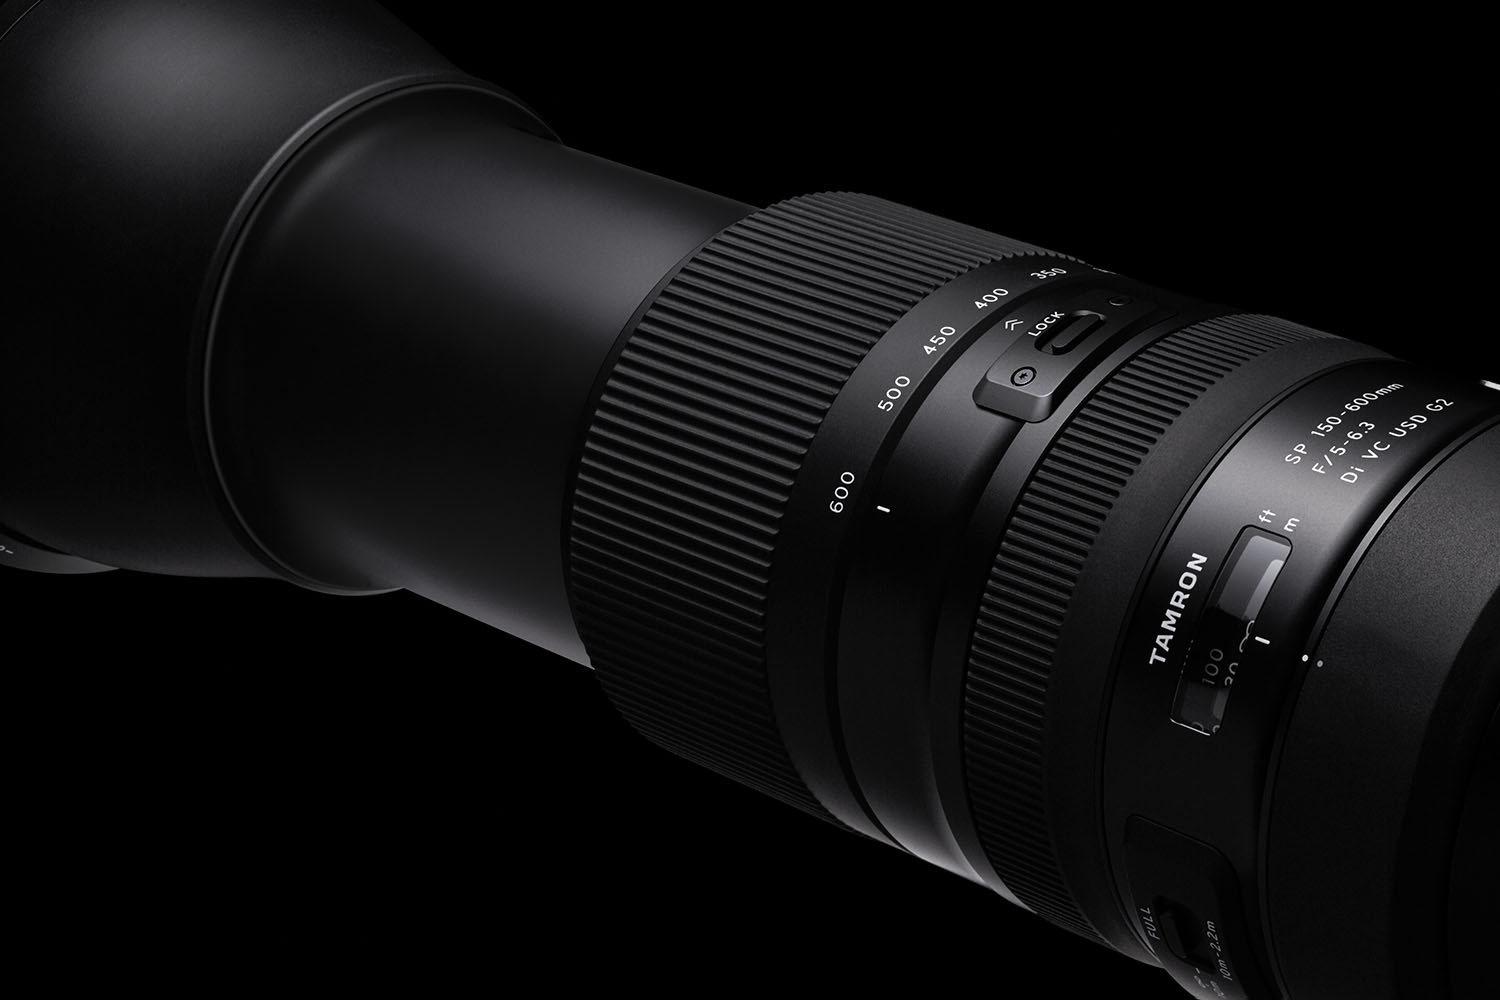 TAMRON 150-600 mm f/5-6,3 SP Di USD G2